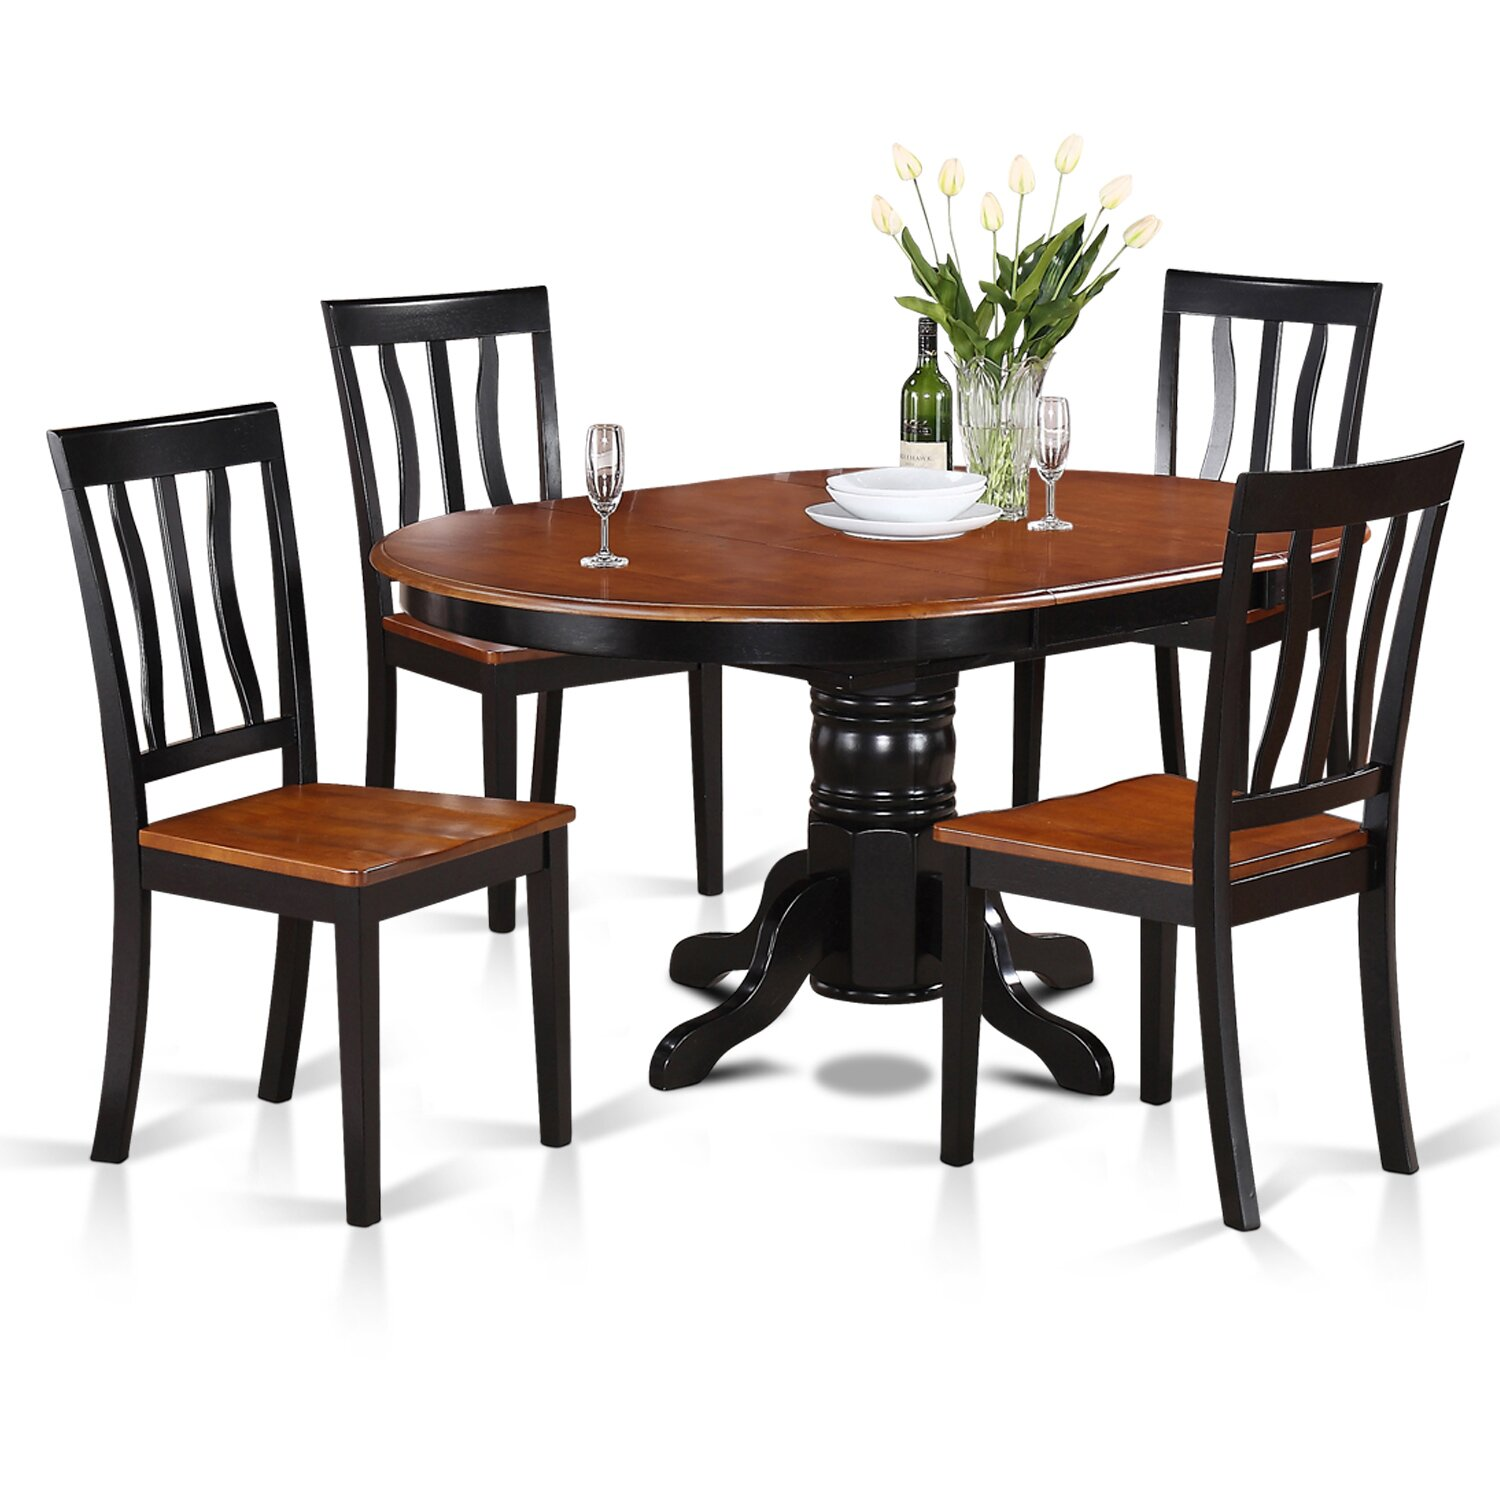 Wooden Dining Set ~ Wooden importers easton piece dining set reviews wayfair